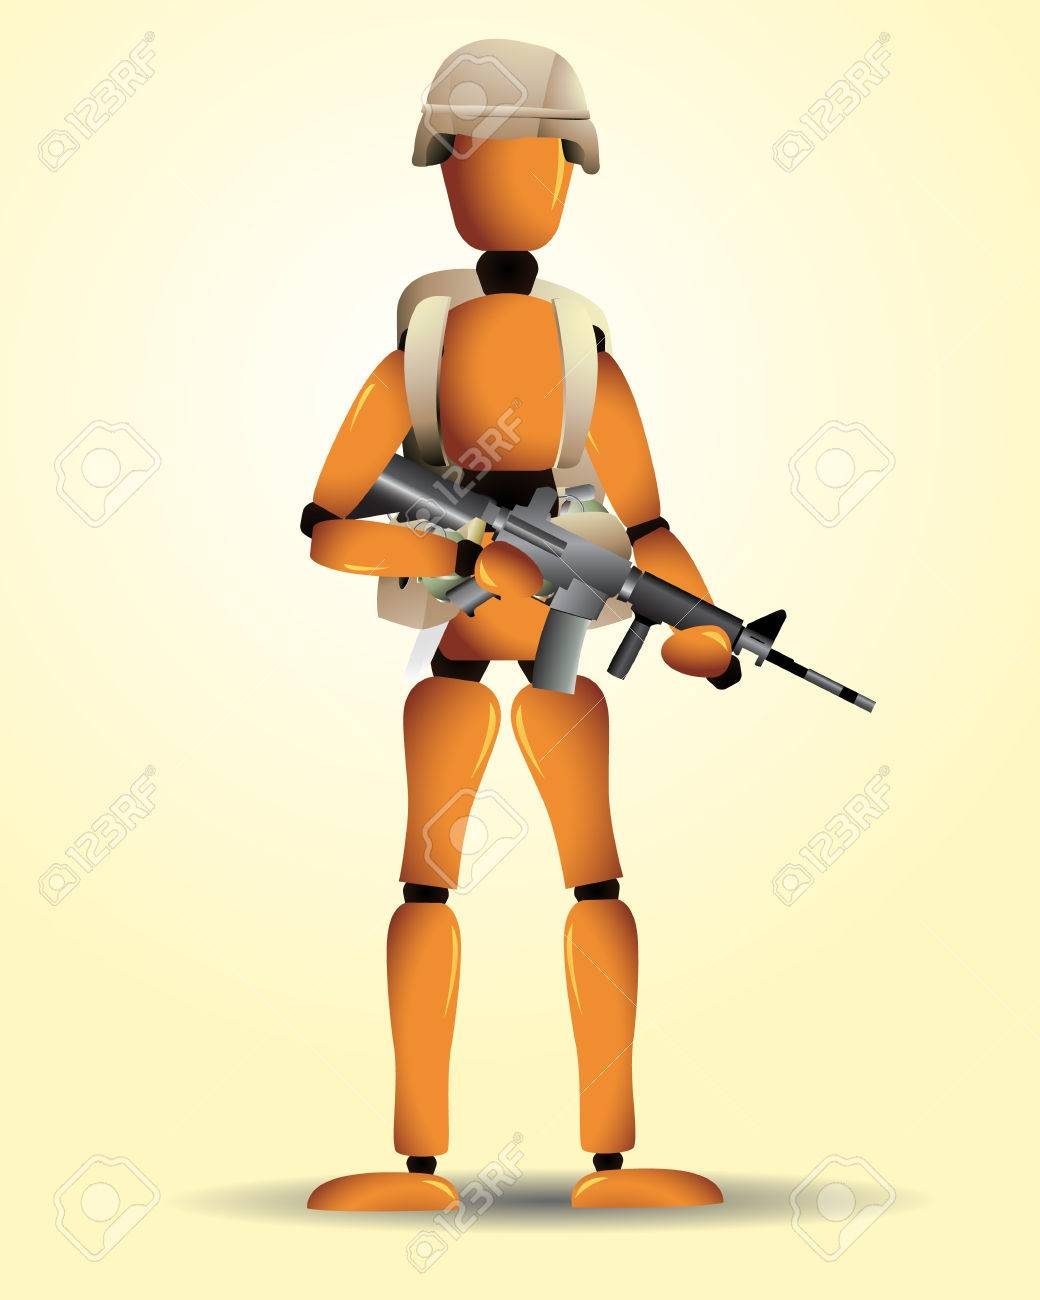 A wooden soldier with different weapons, an helmet and a backpack. Linear and radial gradients used. Eps8. Stock Vector - 5801148